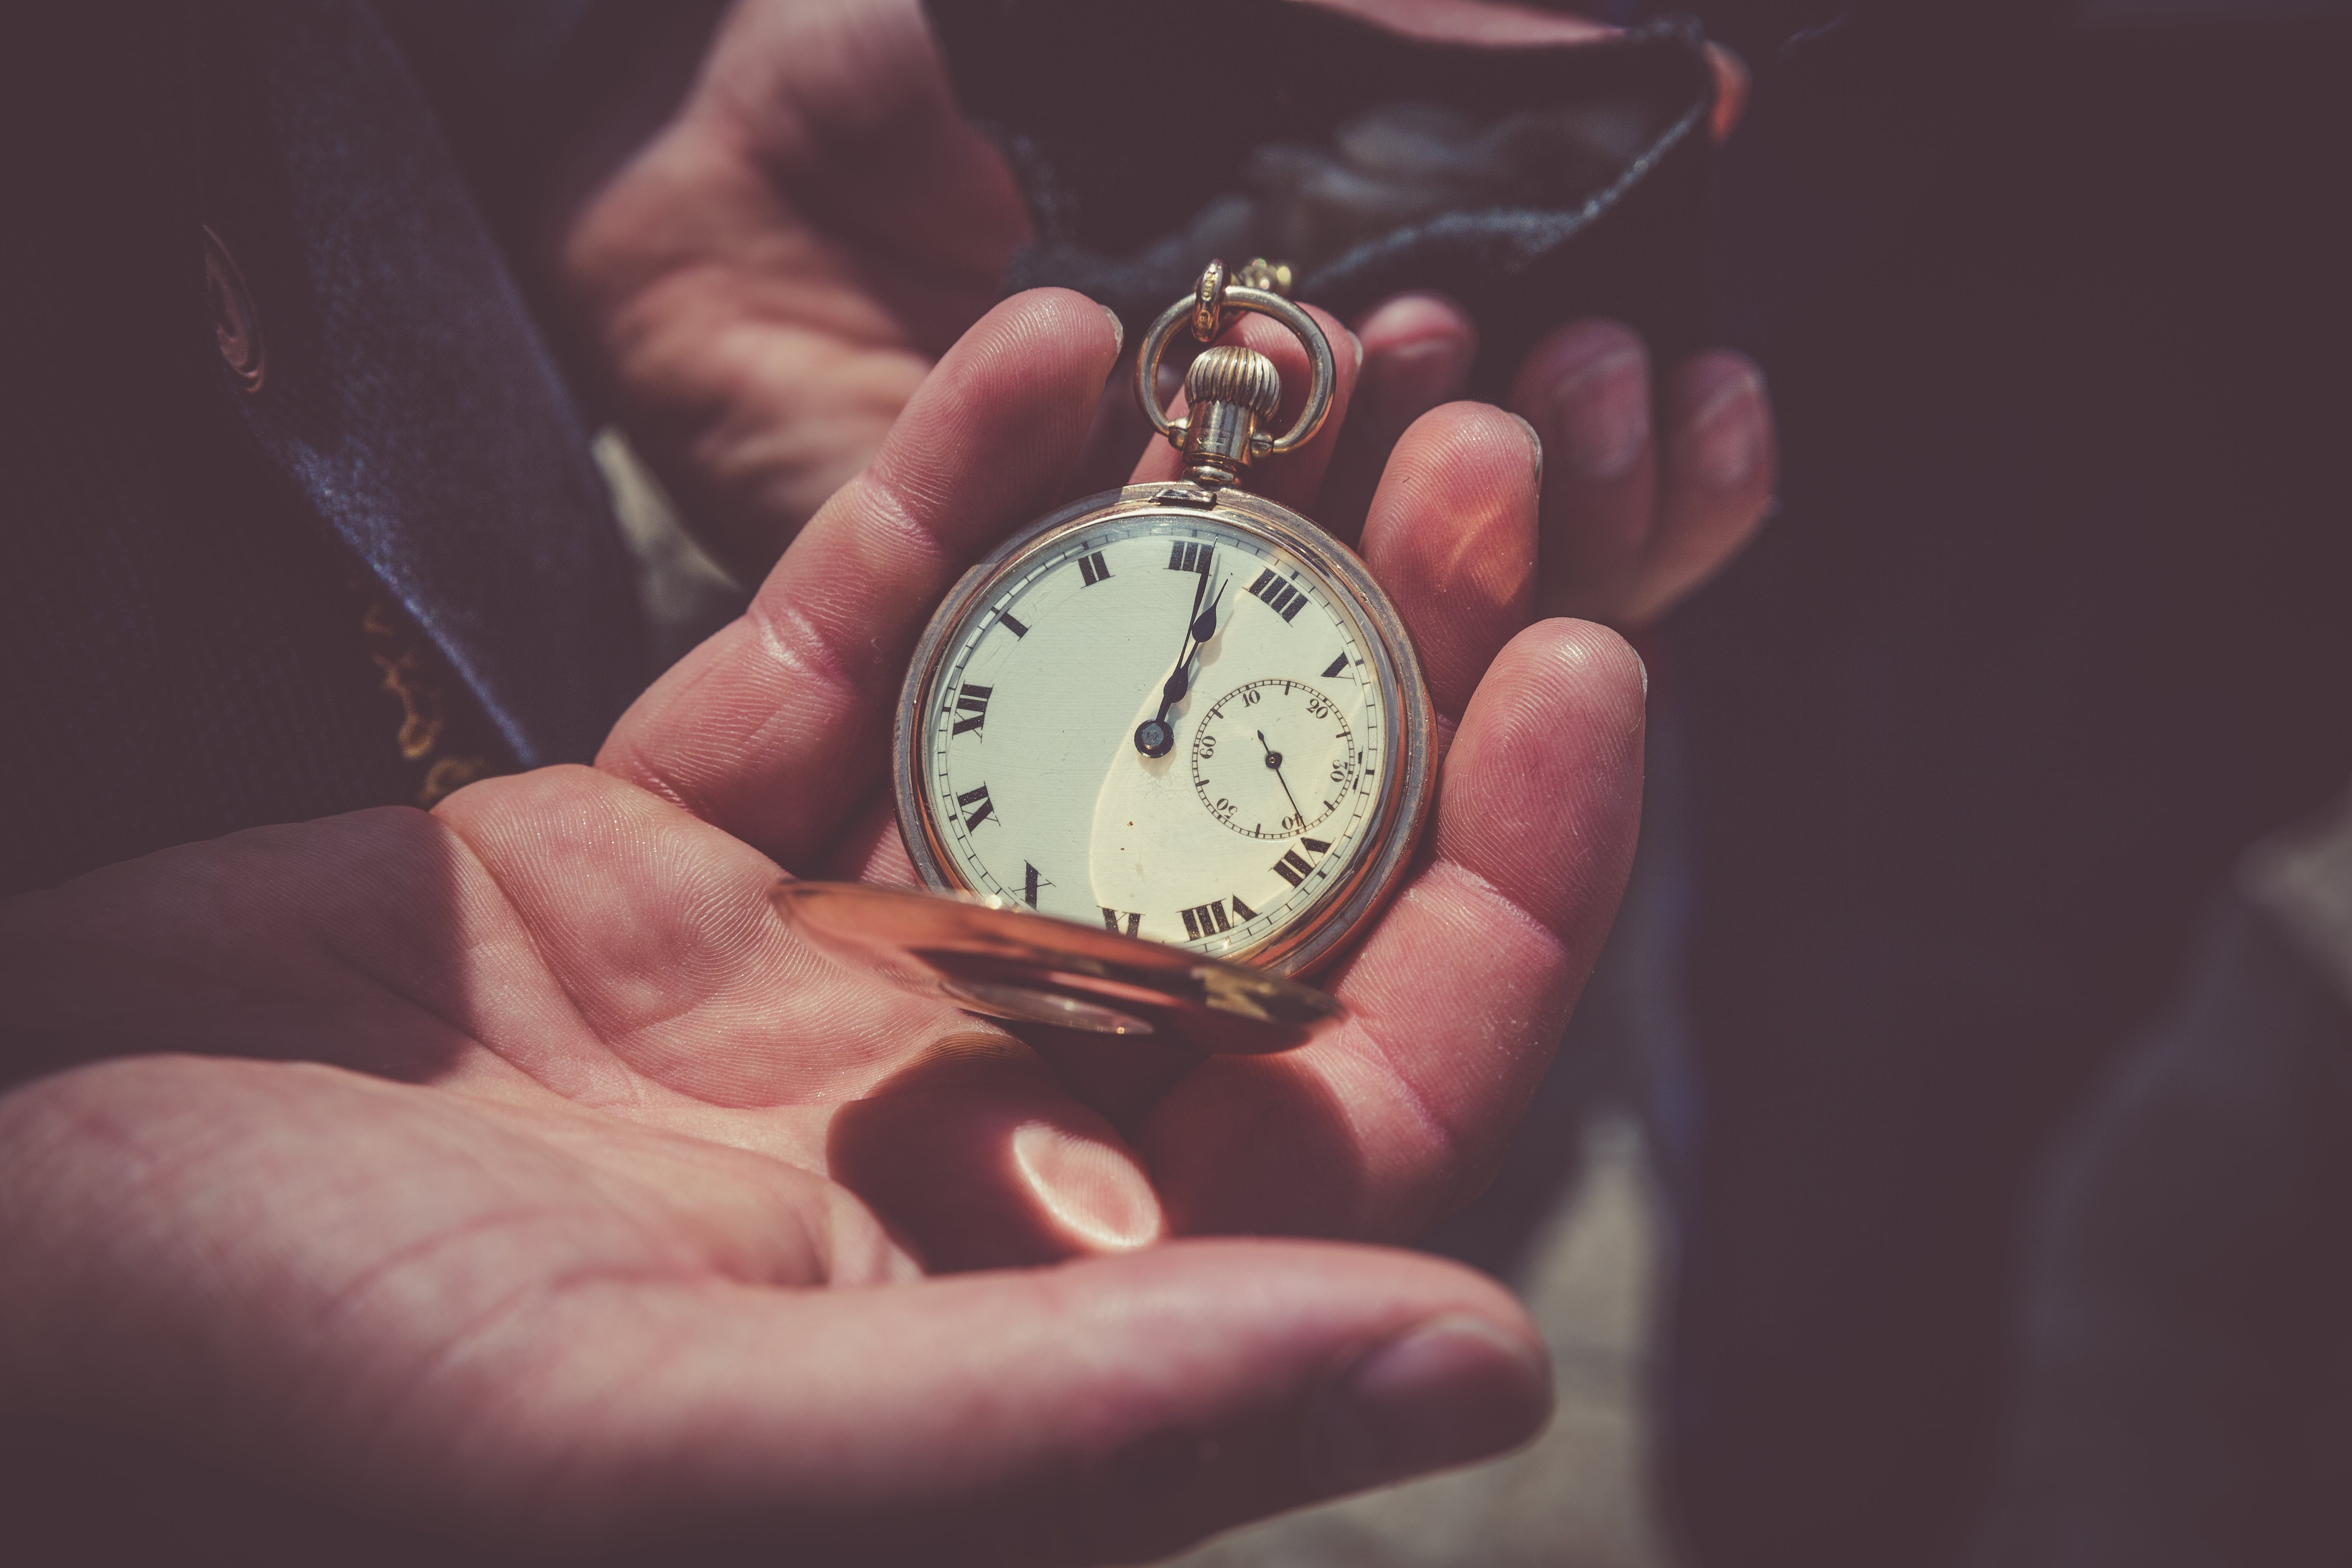 Free stock photo of antique, antique watch, clock face, groom